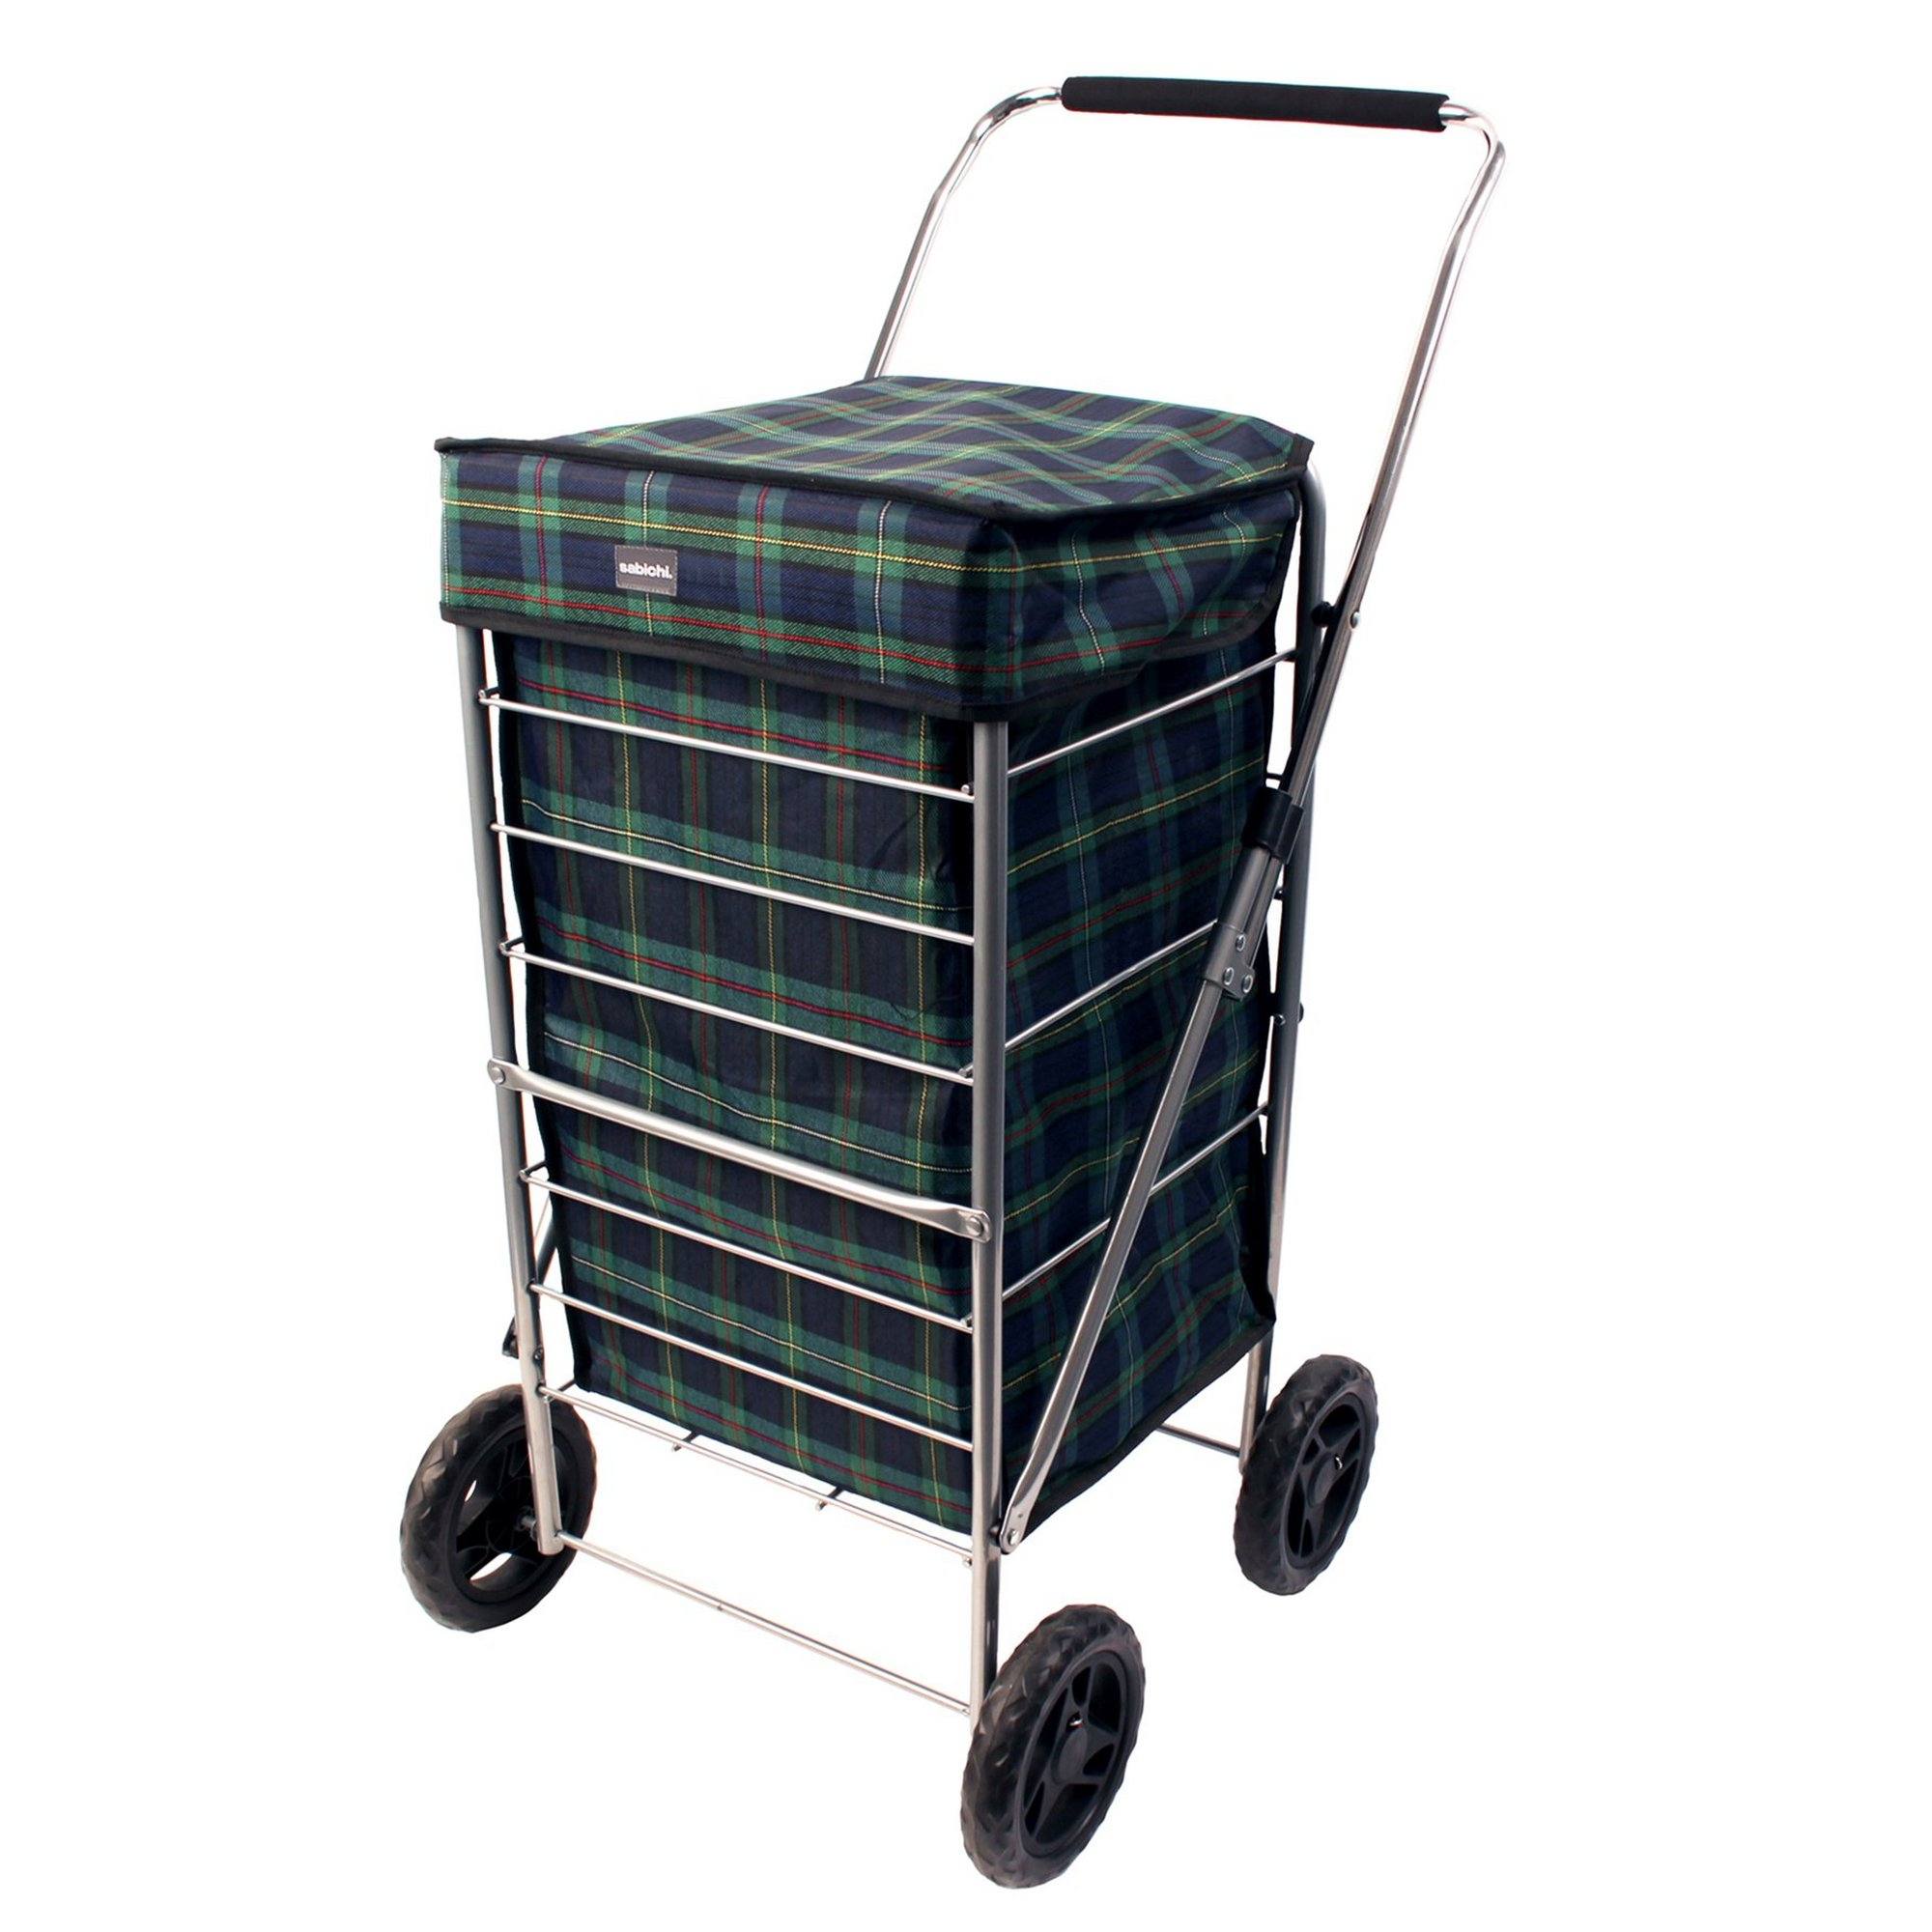 Image of Angus 4 wheel shopping trolley